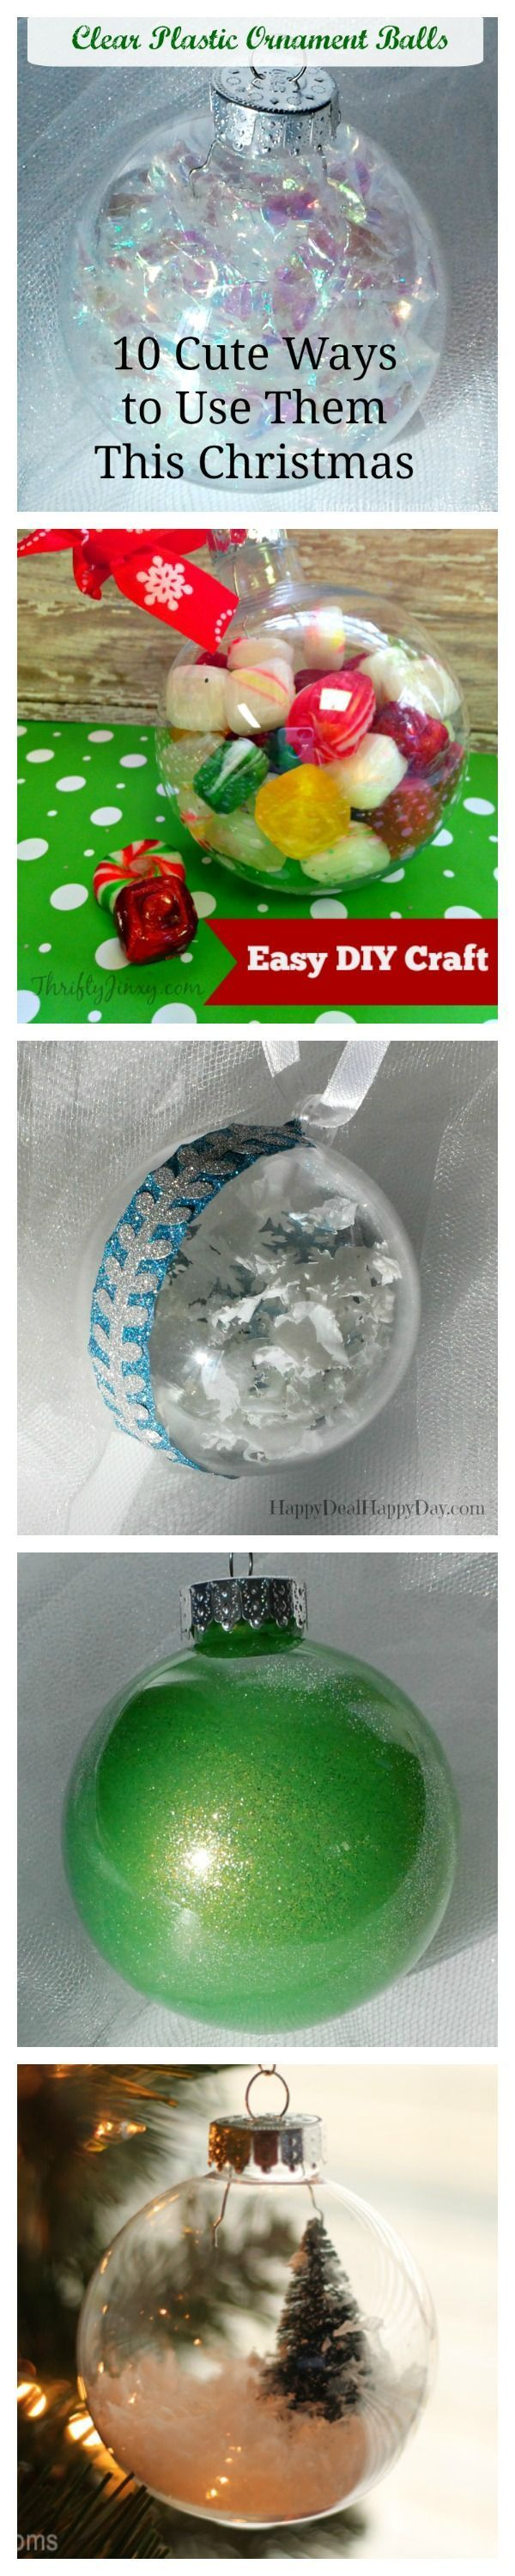 Clear Plastic Ornament Balls - 10 Cute Ways to Use Them This Christmas.  Many cute ideas in this post!   http://happydealhappyday.com